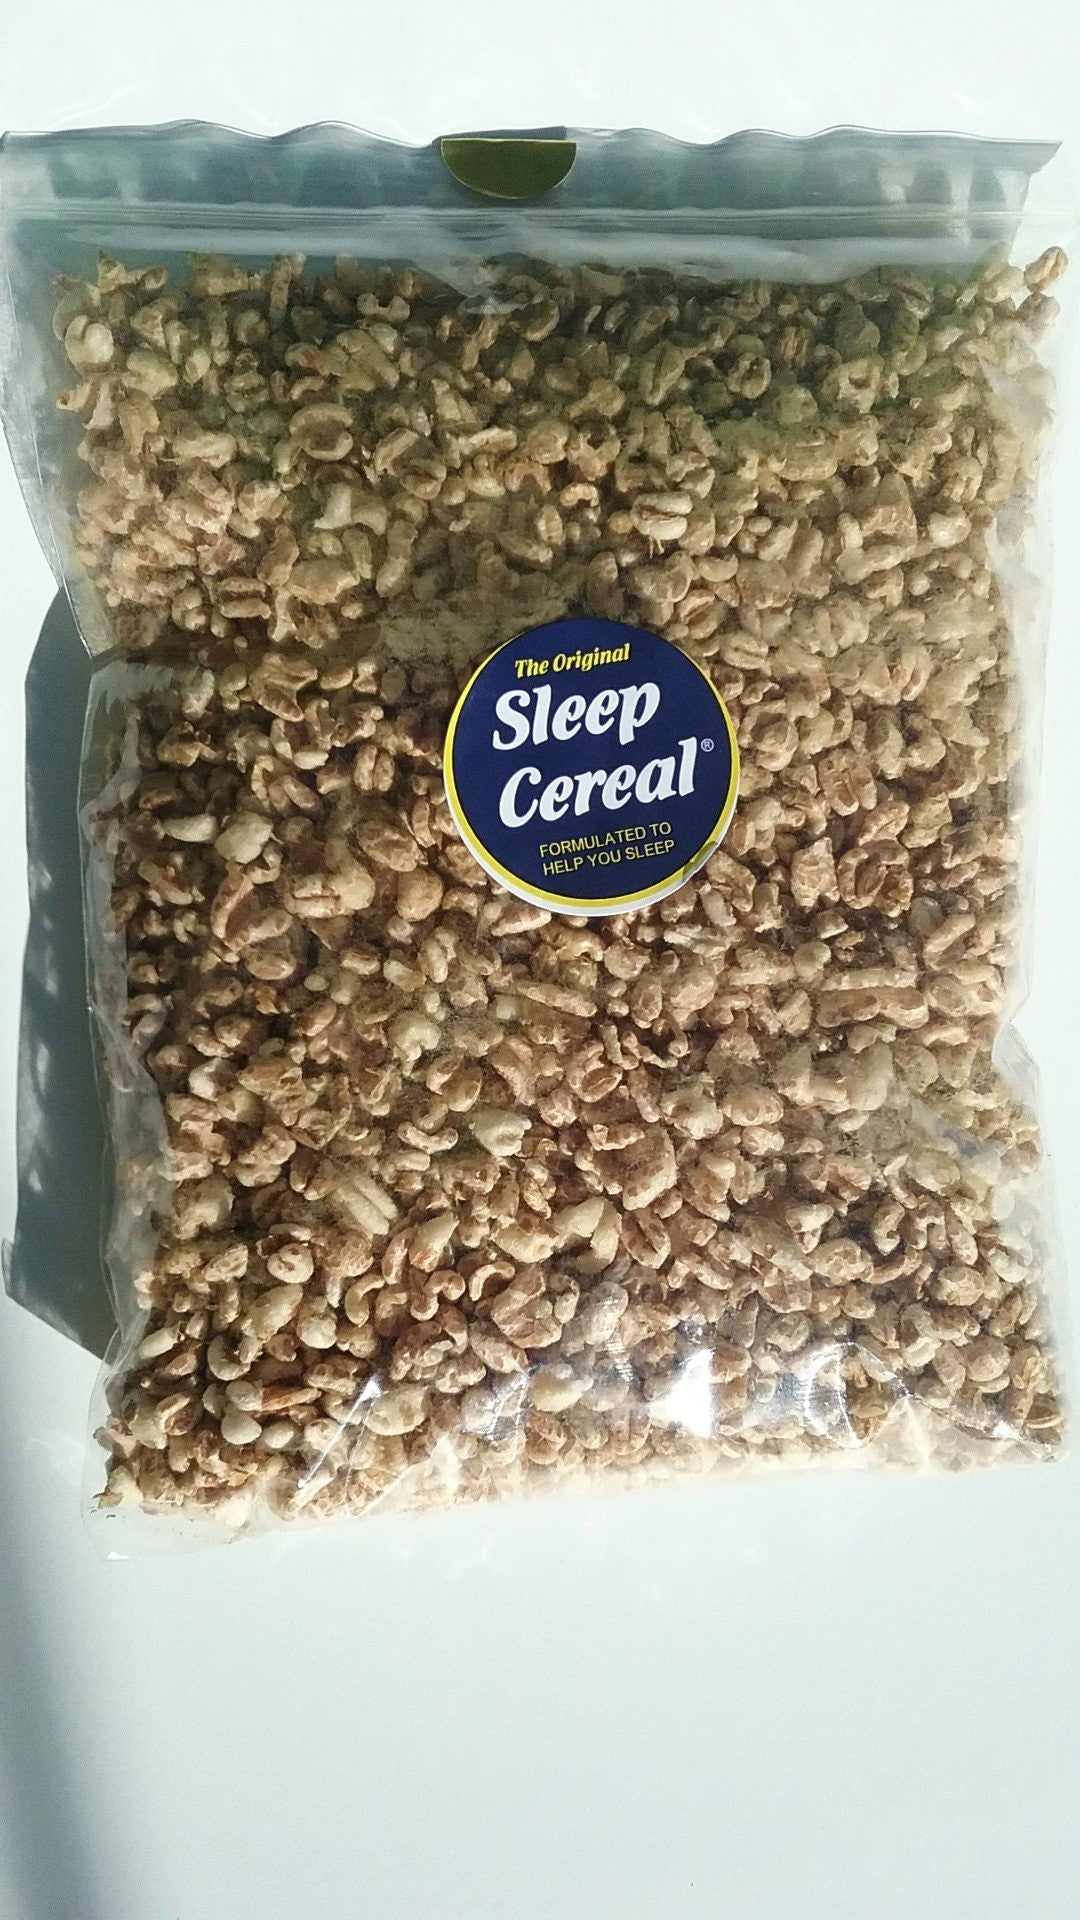 The Original SLEEP CEREAL, formulated to help you sleep-4 oz natural puffed  whole grain wheat pack